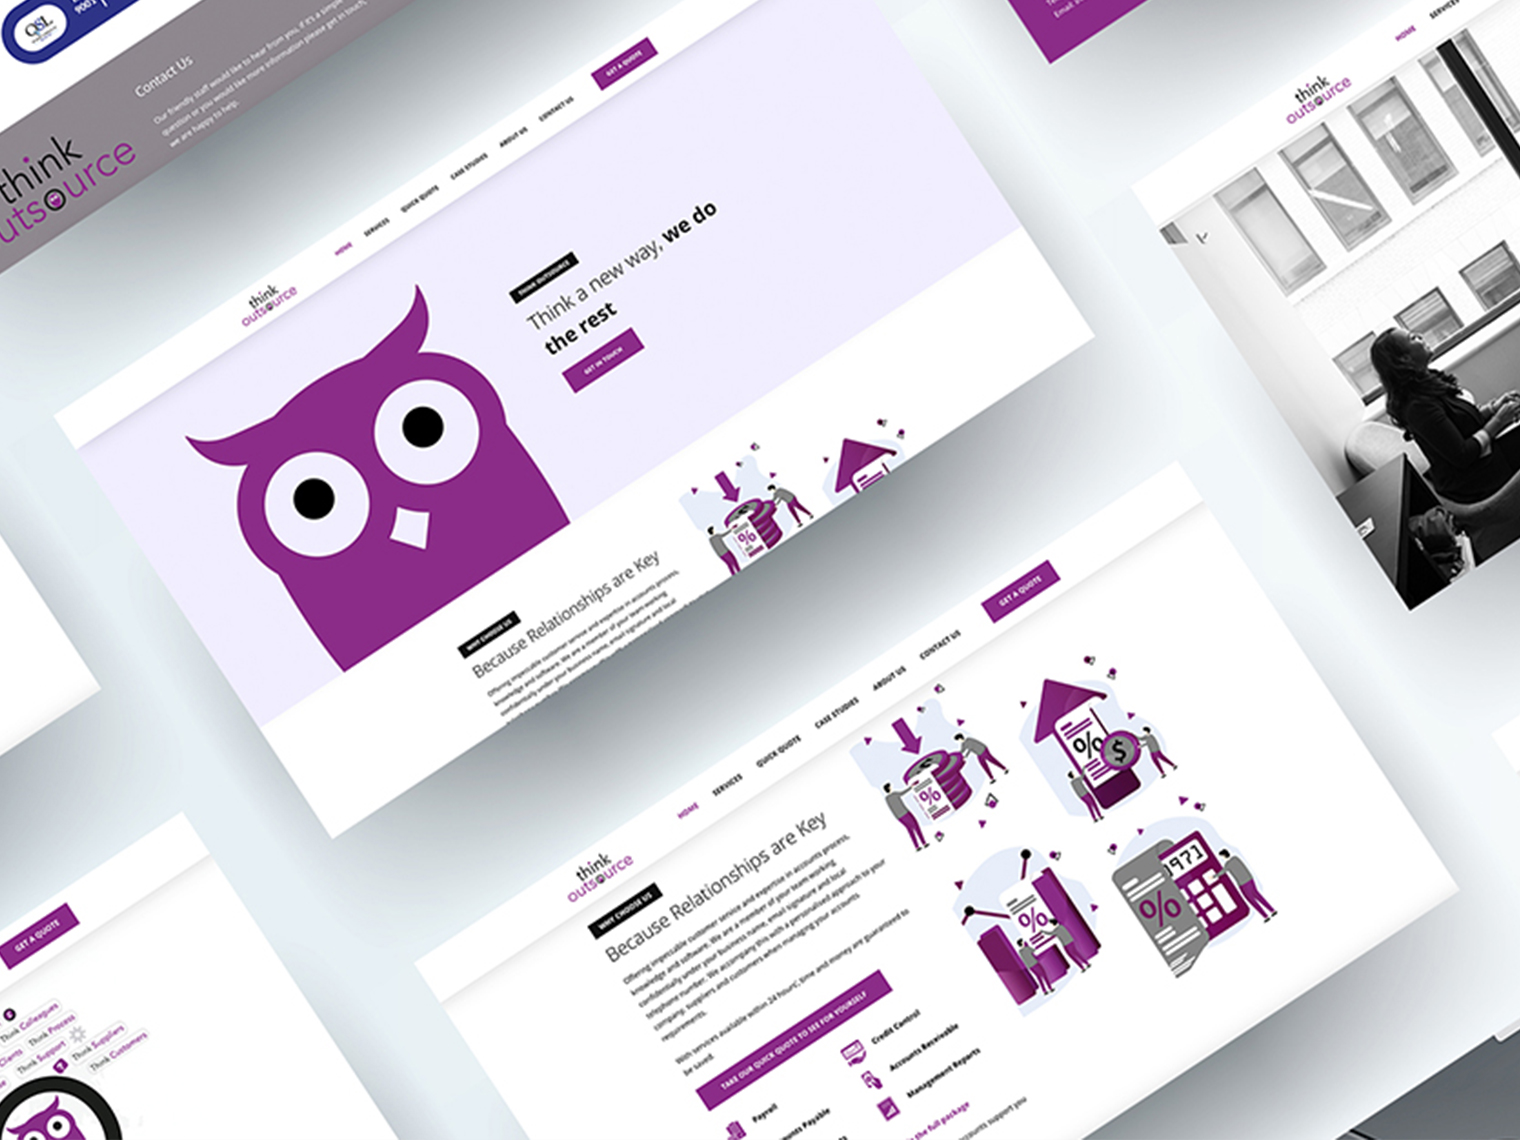 Think Outsource - Web Design Worcestershire & Herefordshire | Graphic Design Worcestershire & Herefordshire | e-Commerce Website Design | Website Designers Malvern, Worcestershire & Herefordshire | Design in the Shires